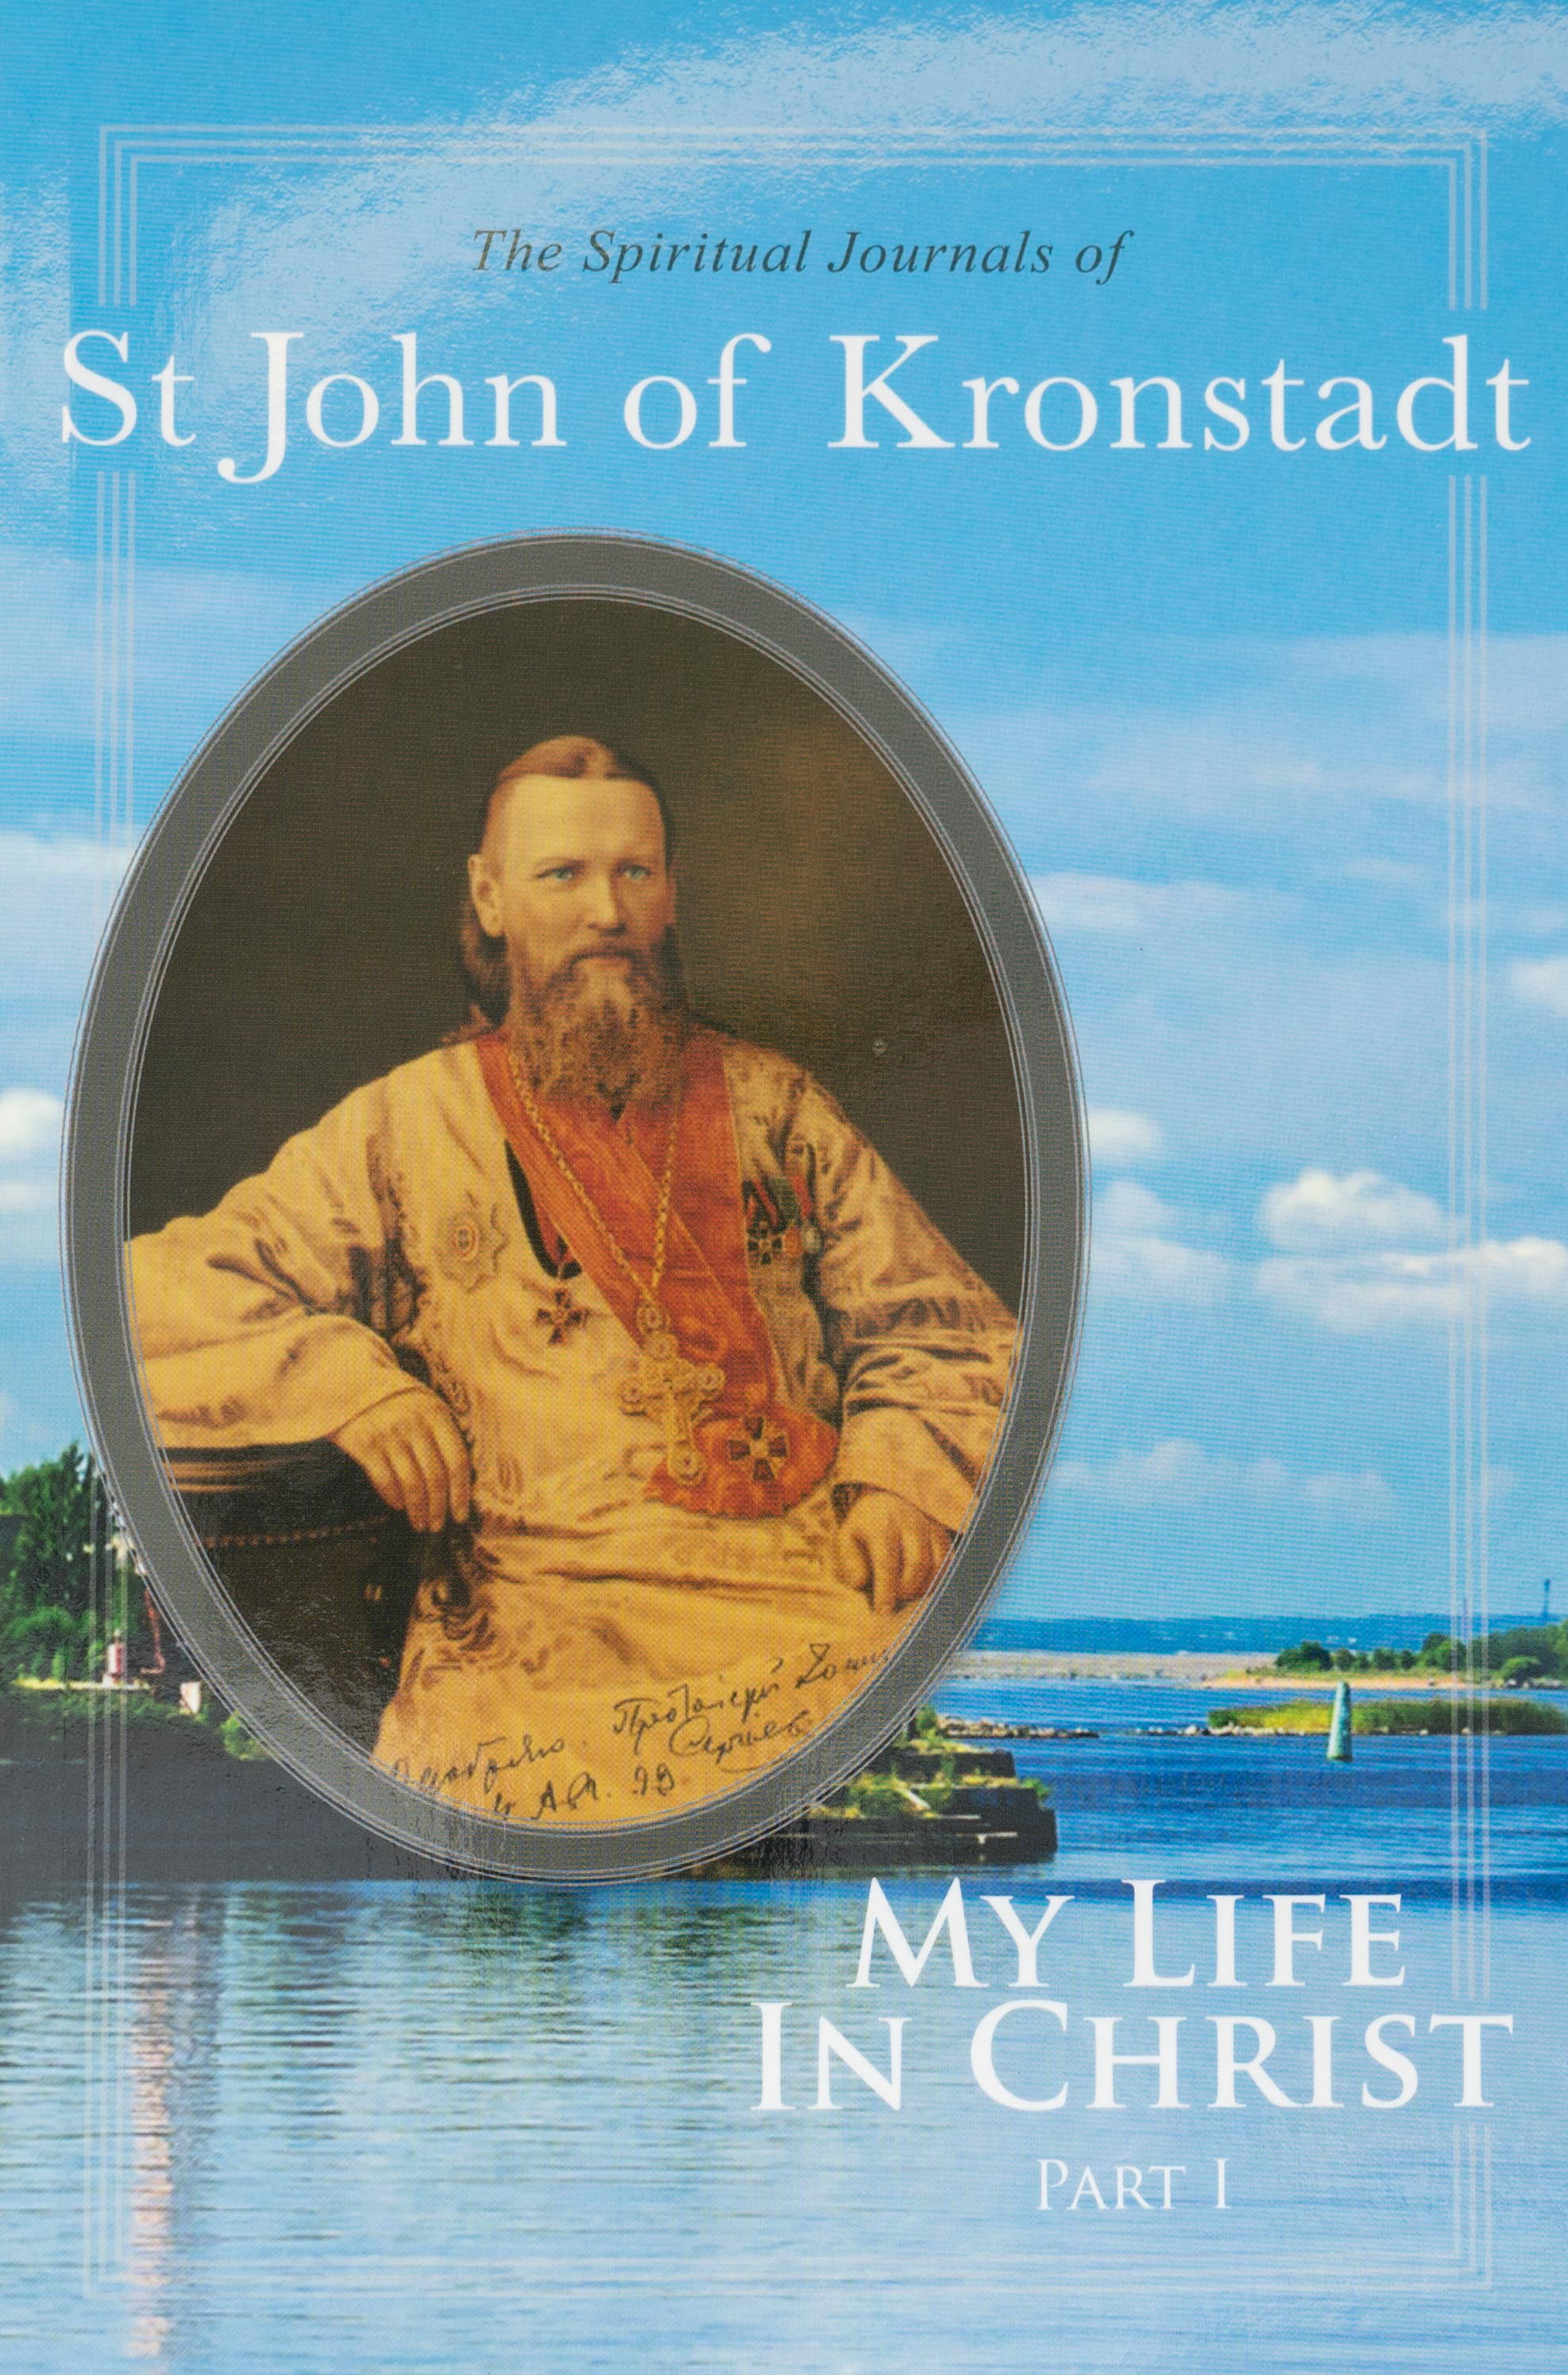 The Spiritual Journals of Saint John of Kronstadt: My Life In Christ Part I